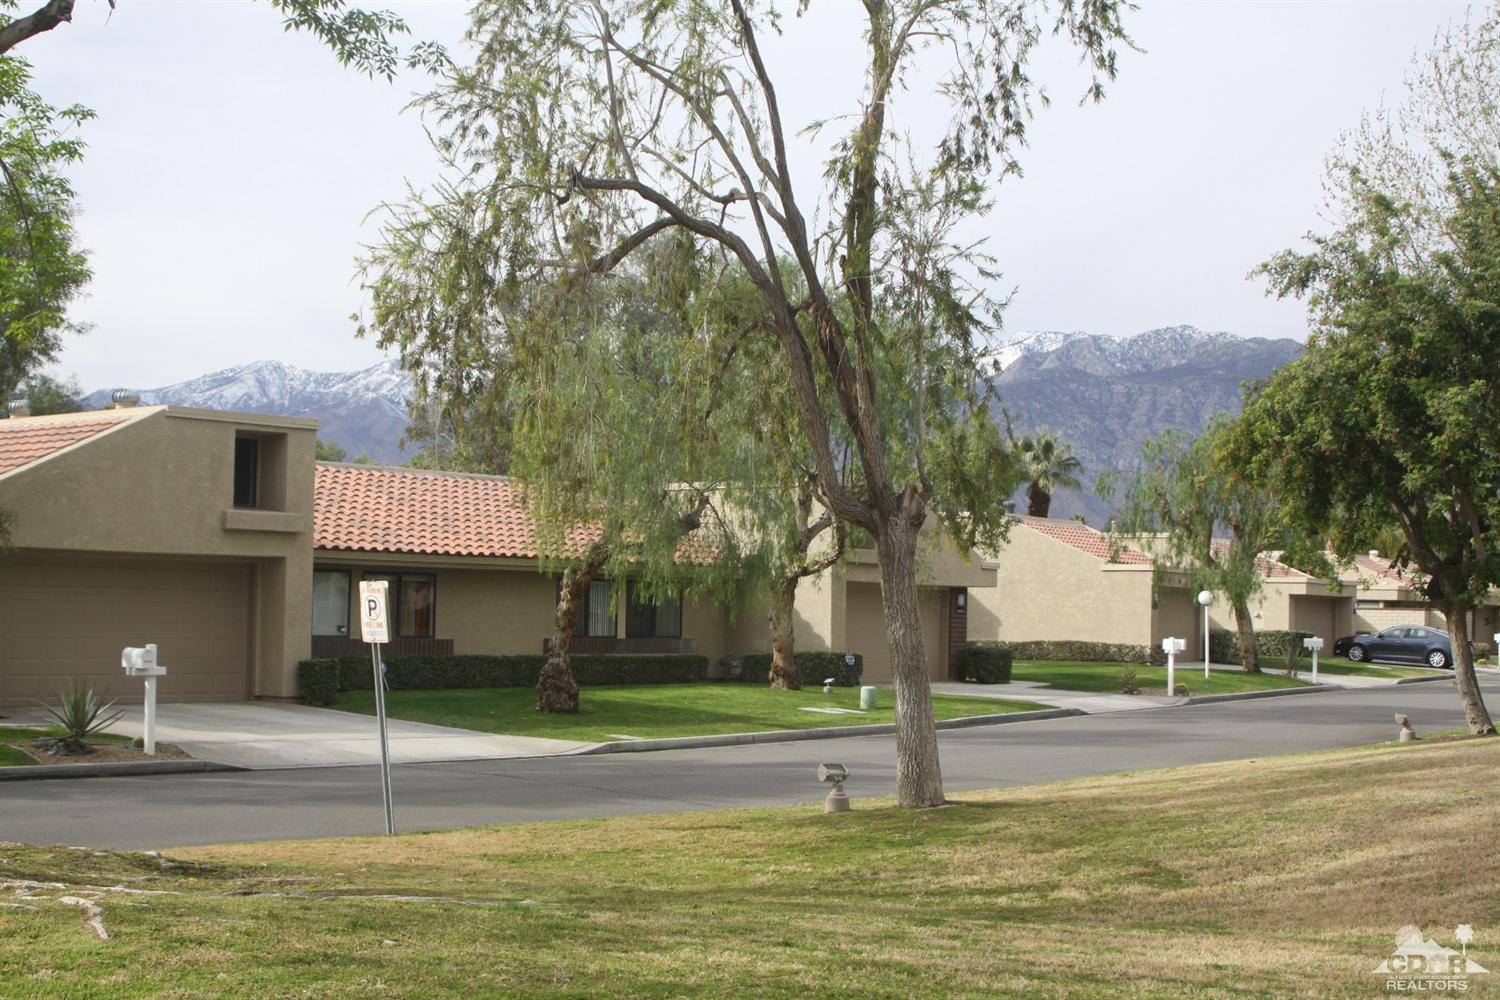 68151 Lakeland Dr Dr, Cathedral City, CA